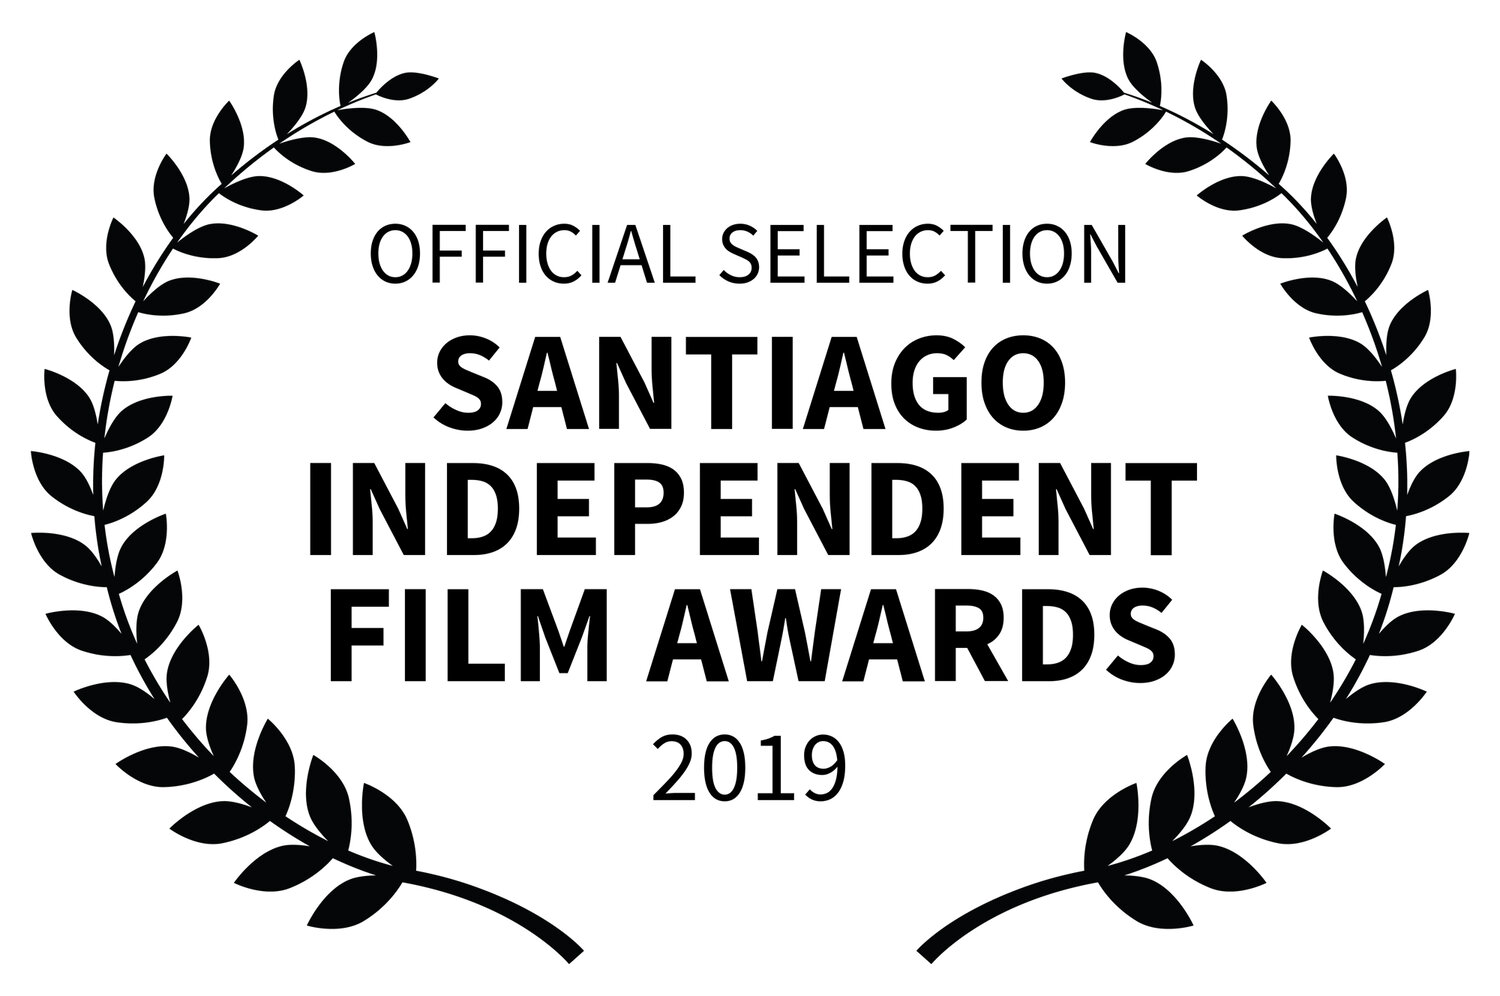 OFFICIALSELECTION-SANTIAGOINDEPENDENTFILMAWARDS-2019_WEB.jpg